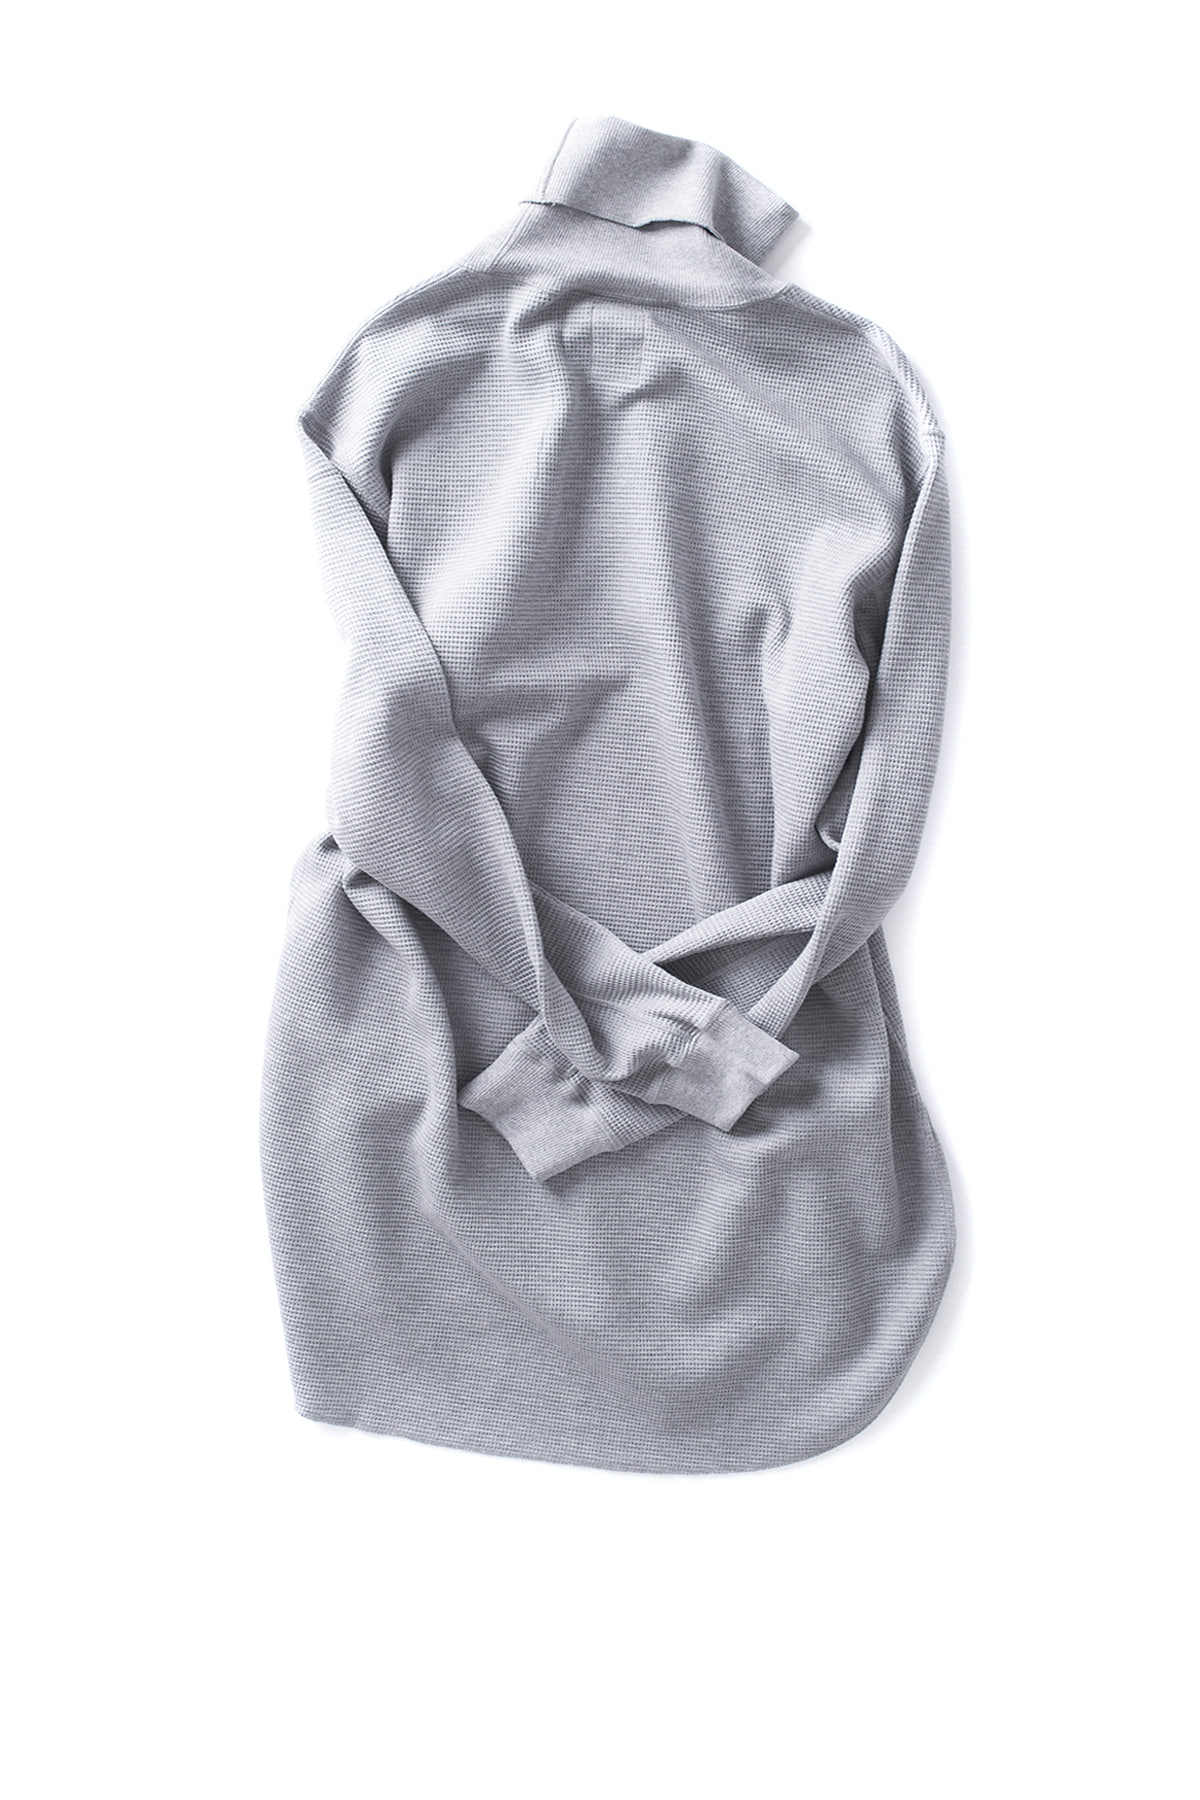 Name : Waffle Thermal Turtleneck (Grey)